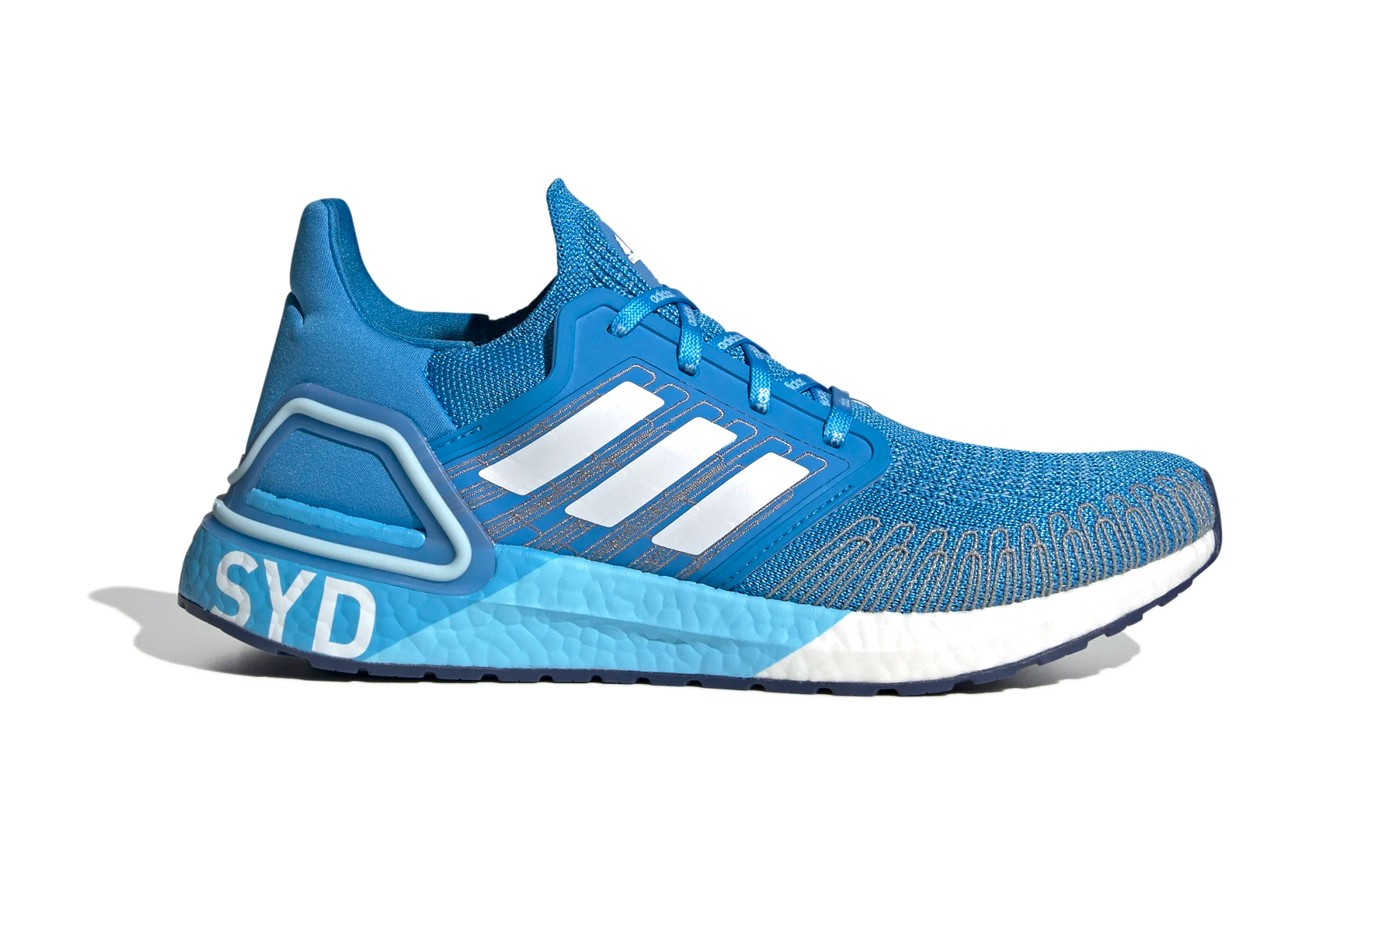 Adidas Ultraboost 20 Quot City Pack Quot Collection